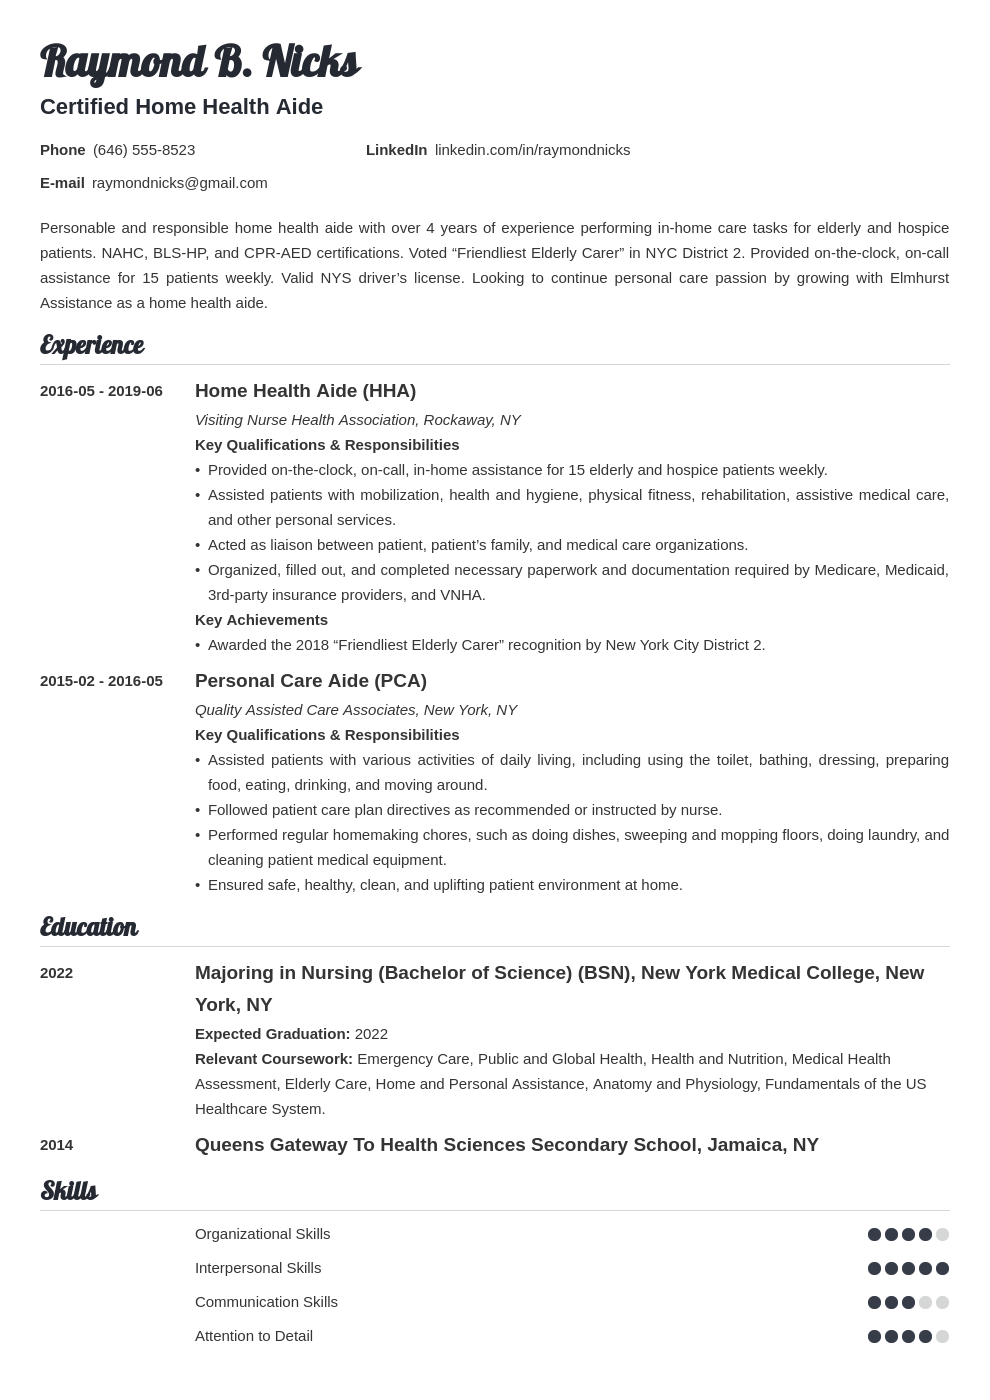 Home Health Aide Resume Sample Job Description For Hha